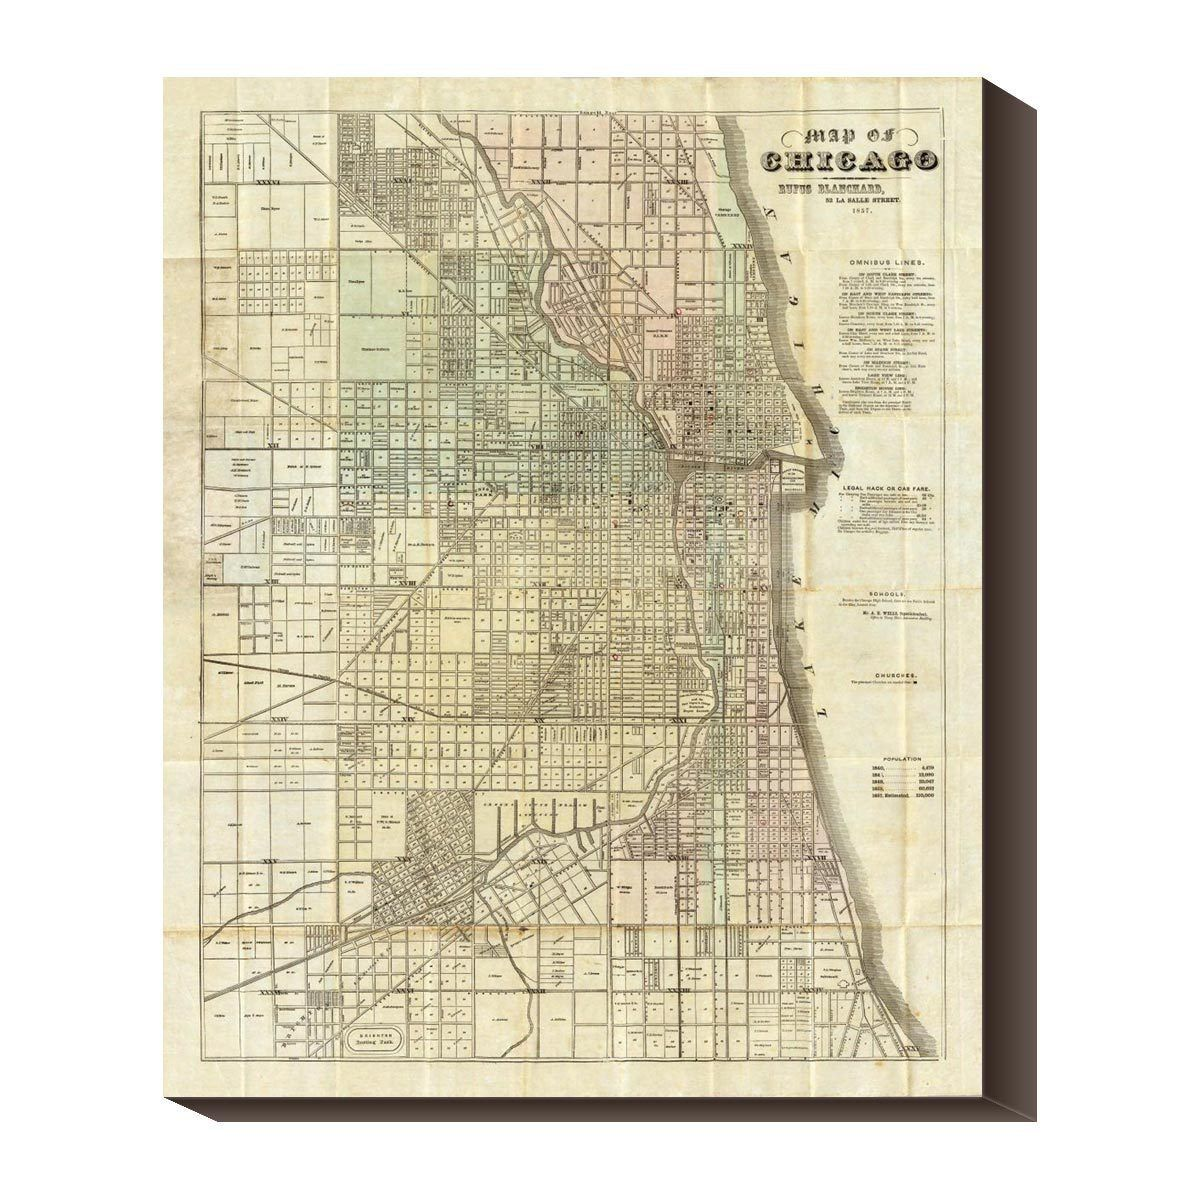 Neat Historic Chicago Map Prefire The Chicagoan Pinterest - Chicago fire map